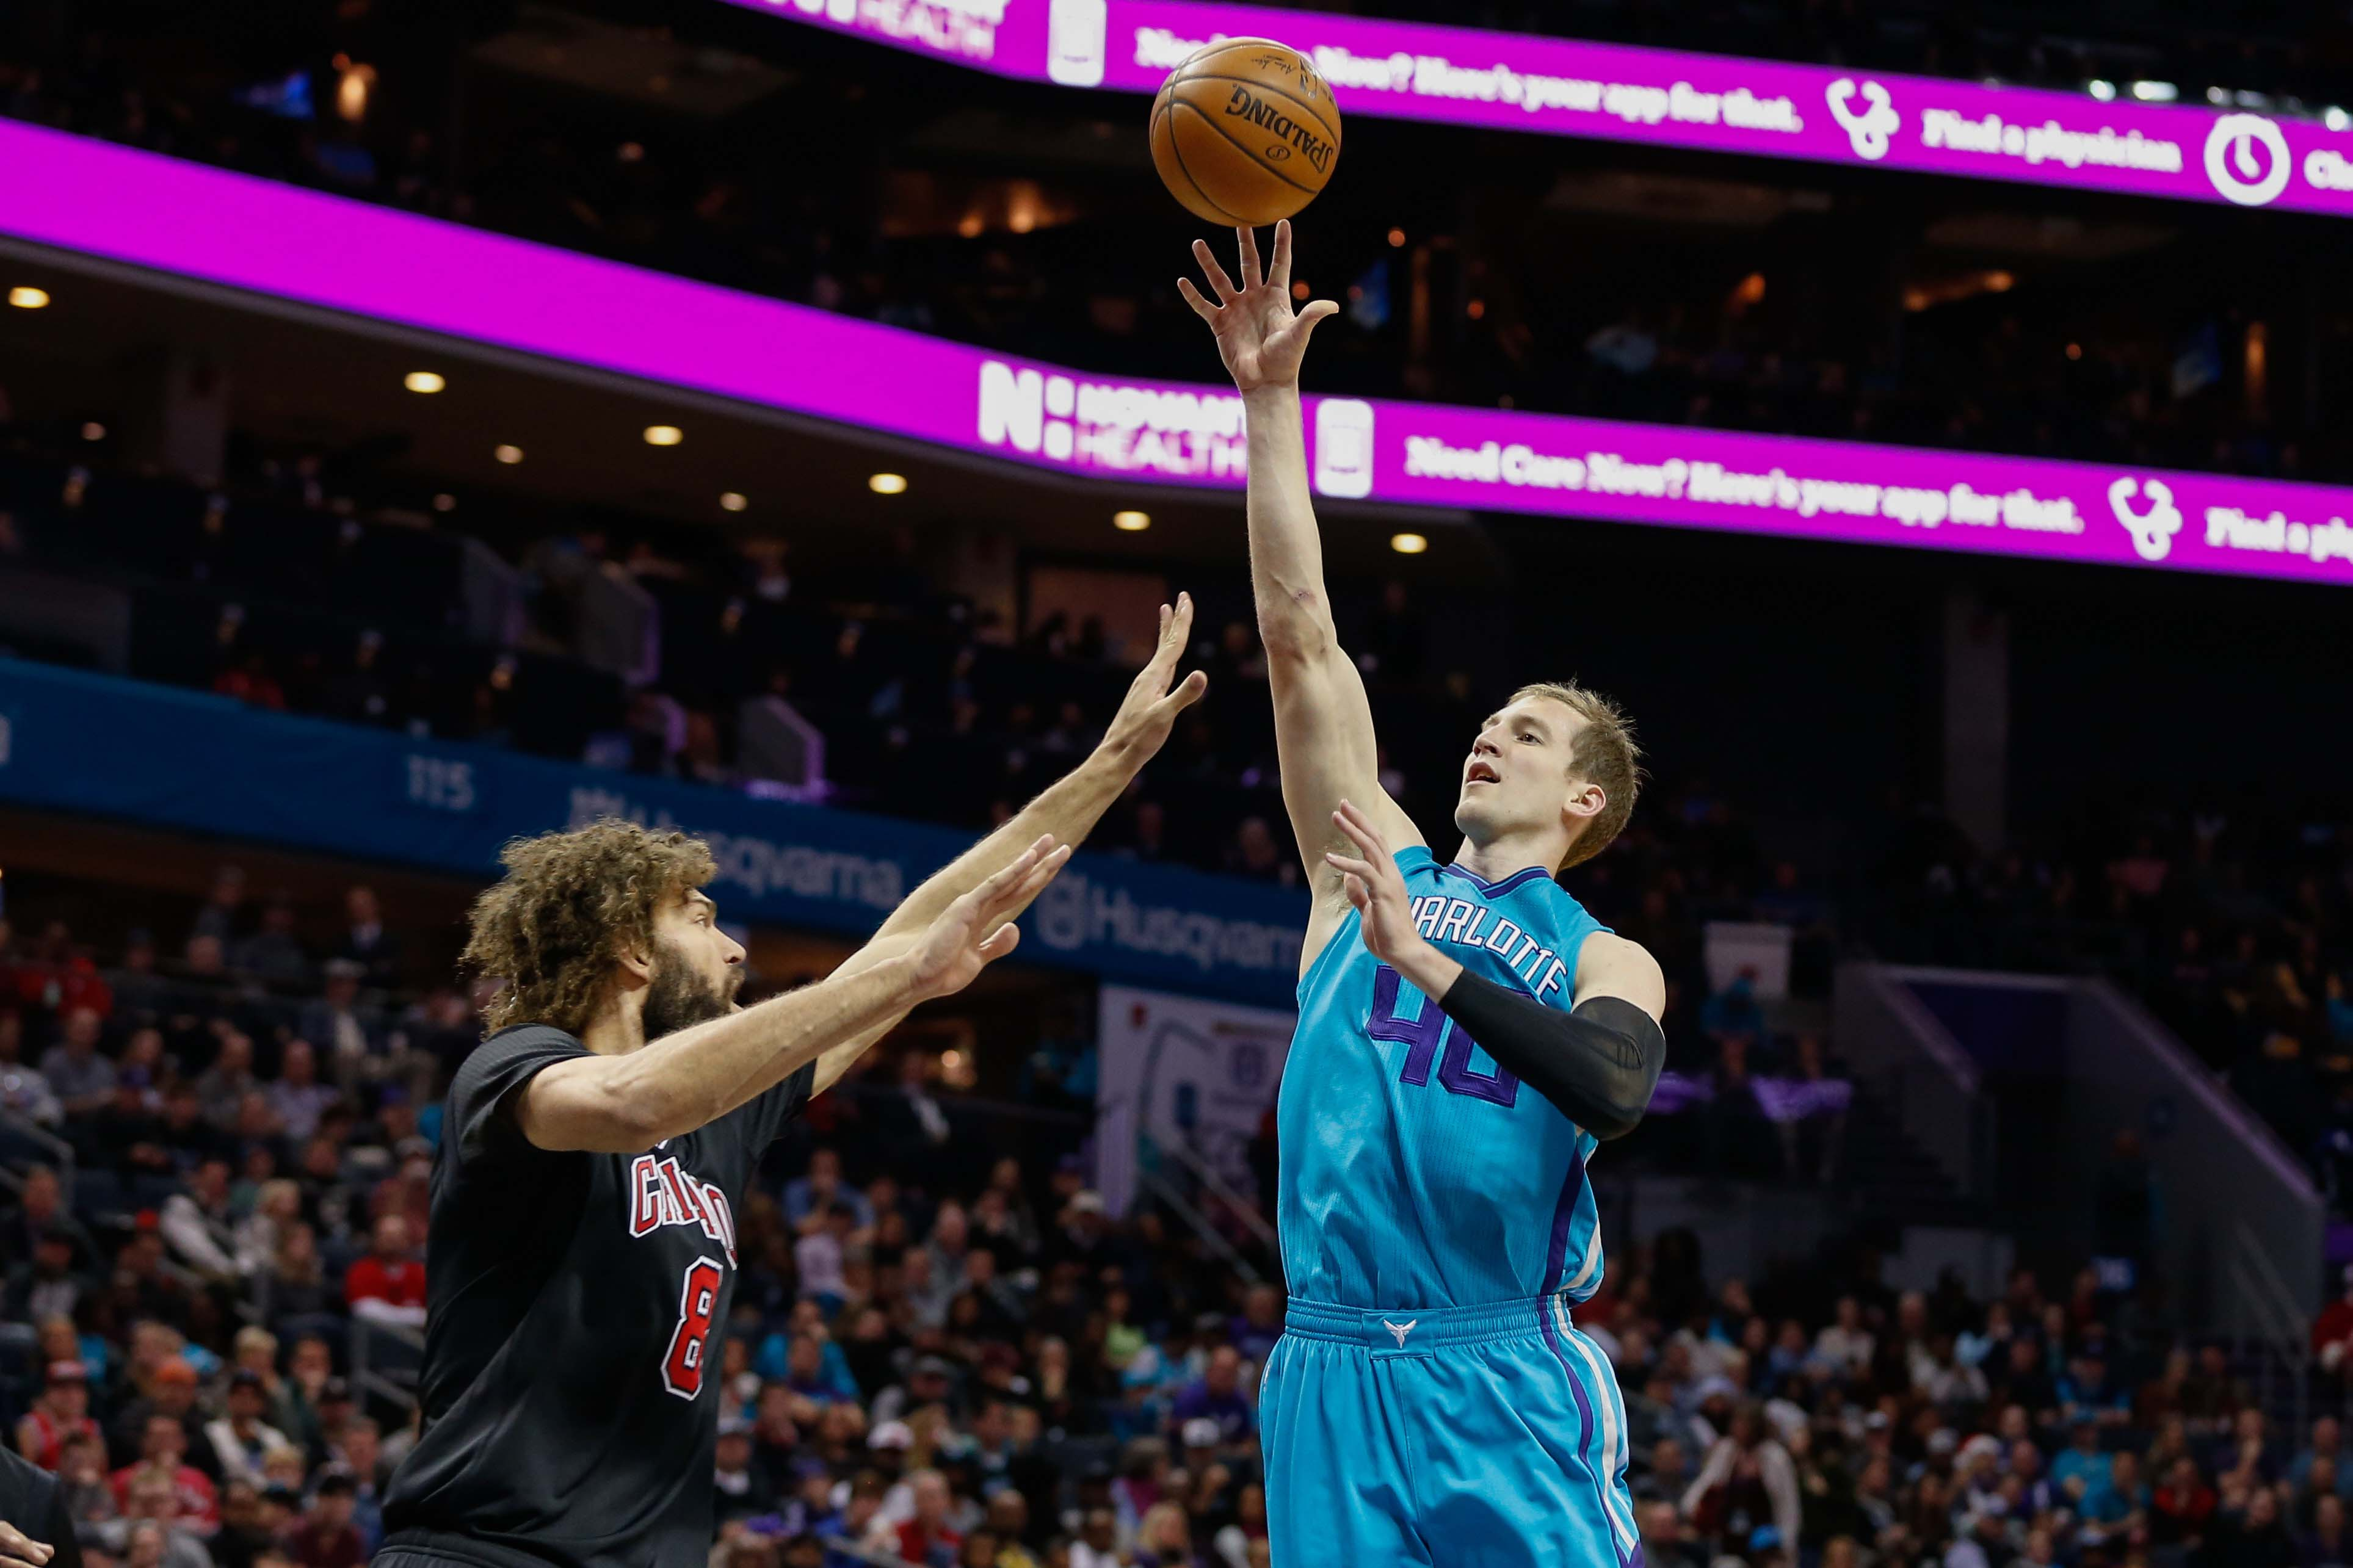 Cody Zeller A Student Of The Details, In Basketball And Life